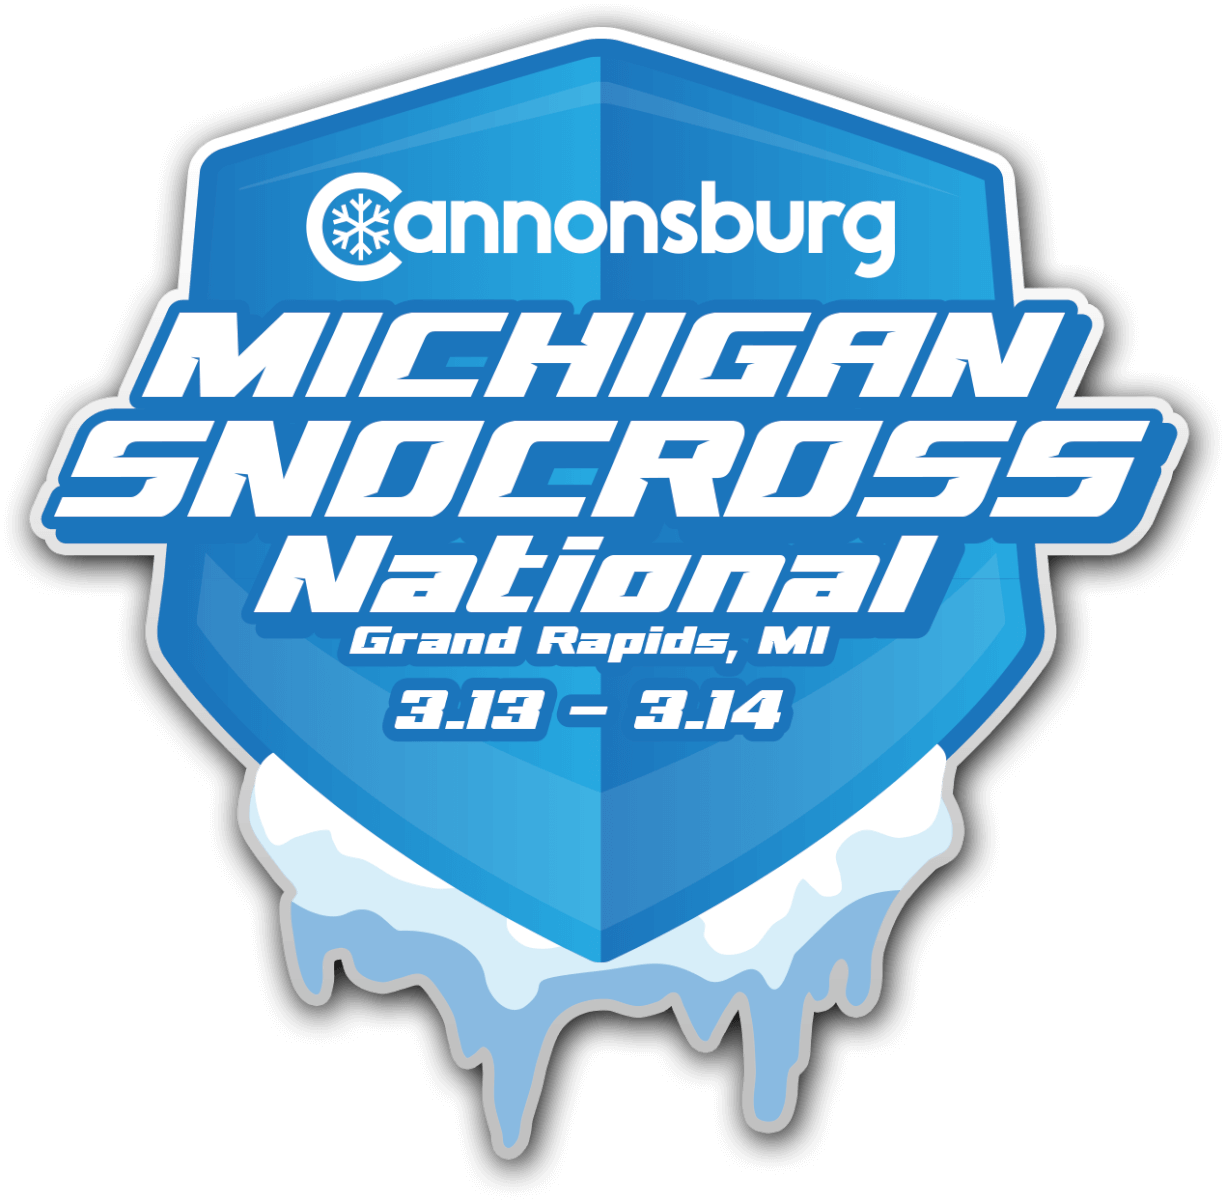 MICHIGAN SNOCROSS NATIONAL